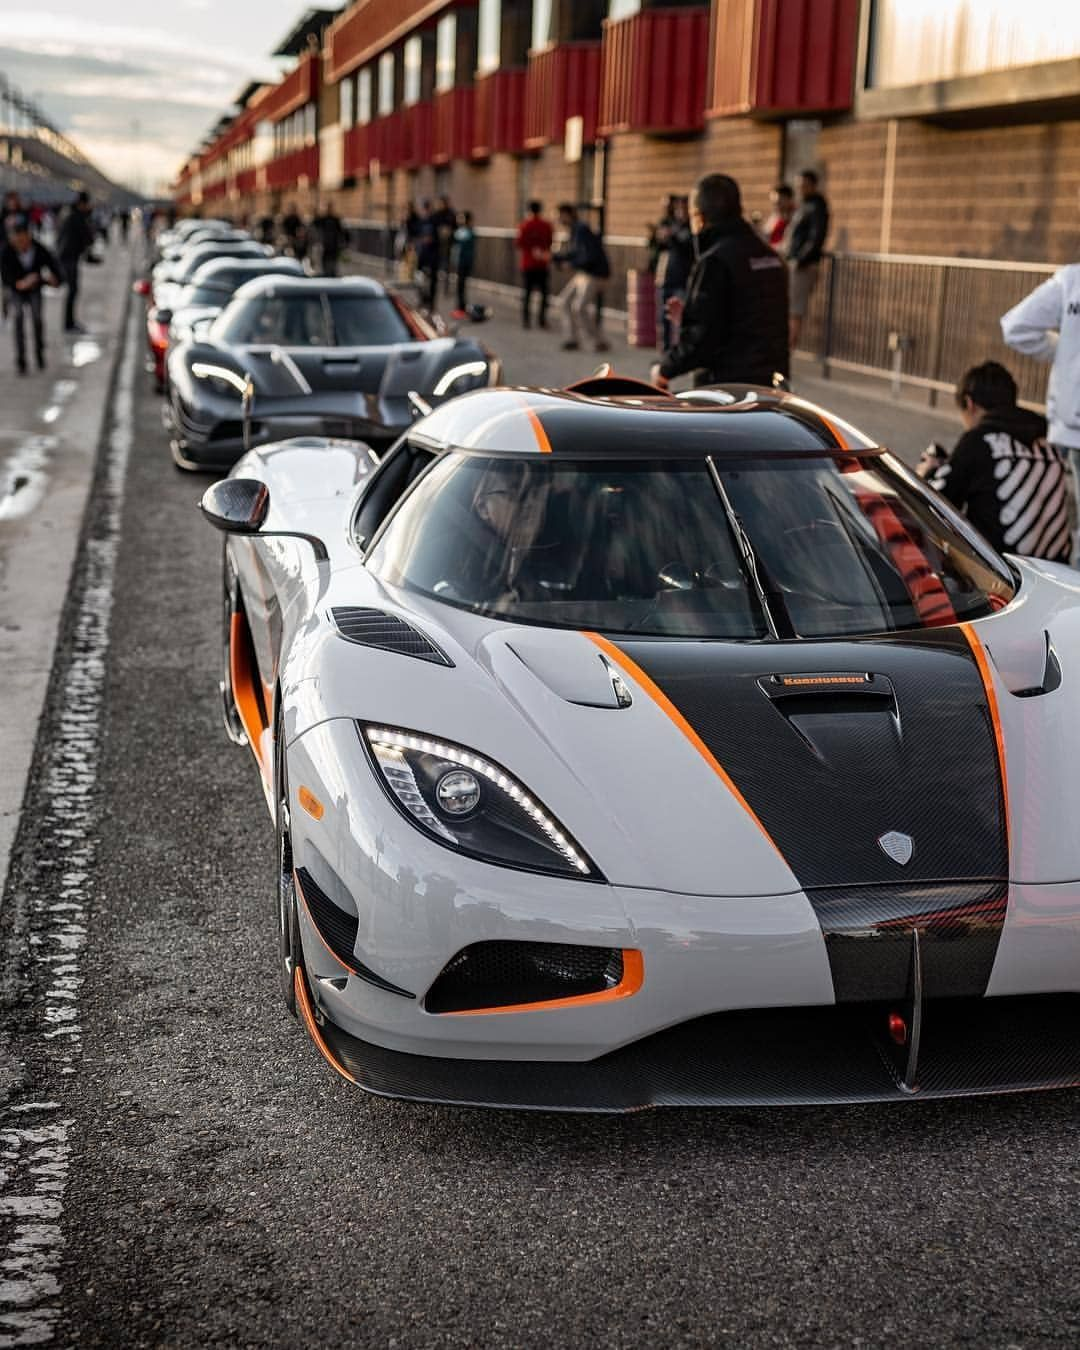 Koenigsegg In 2020 Super Cars Cheap Luxury Cars Affordable Luxury Cars